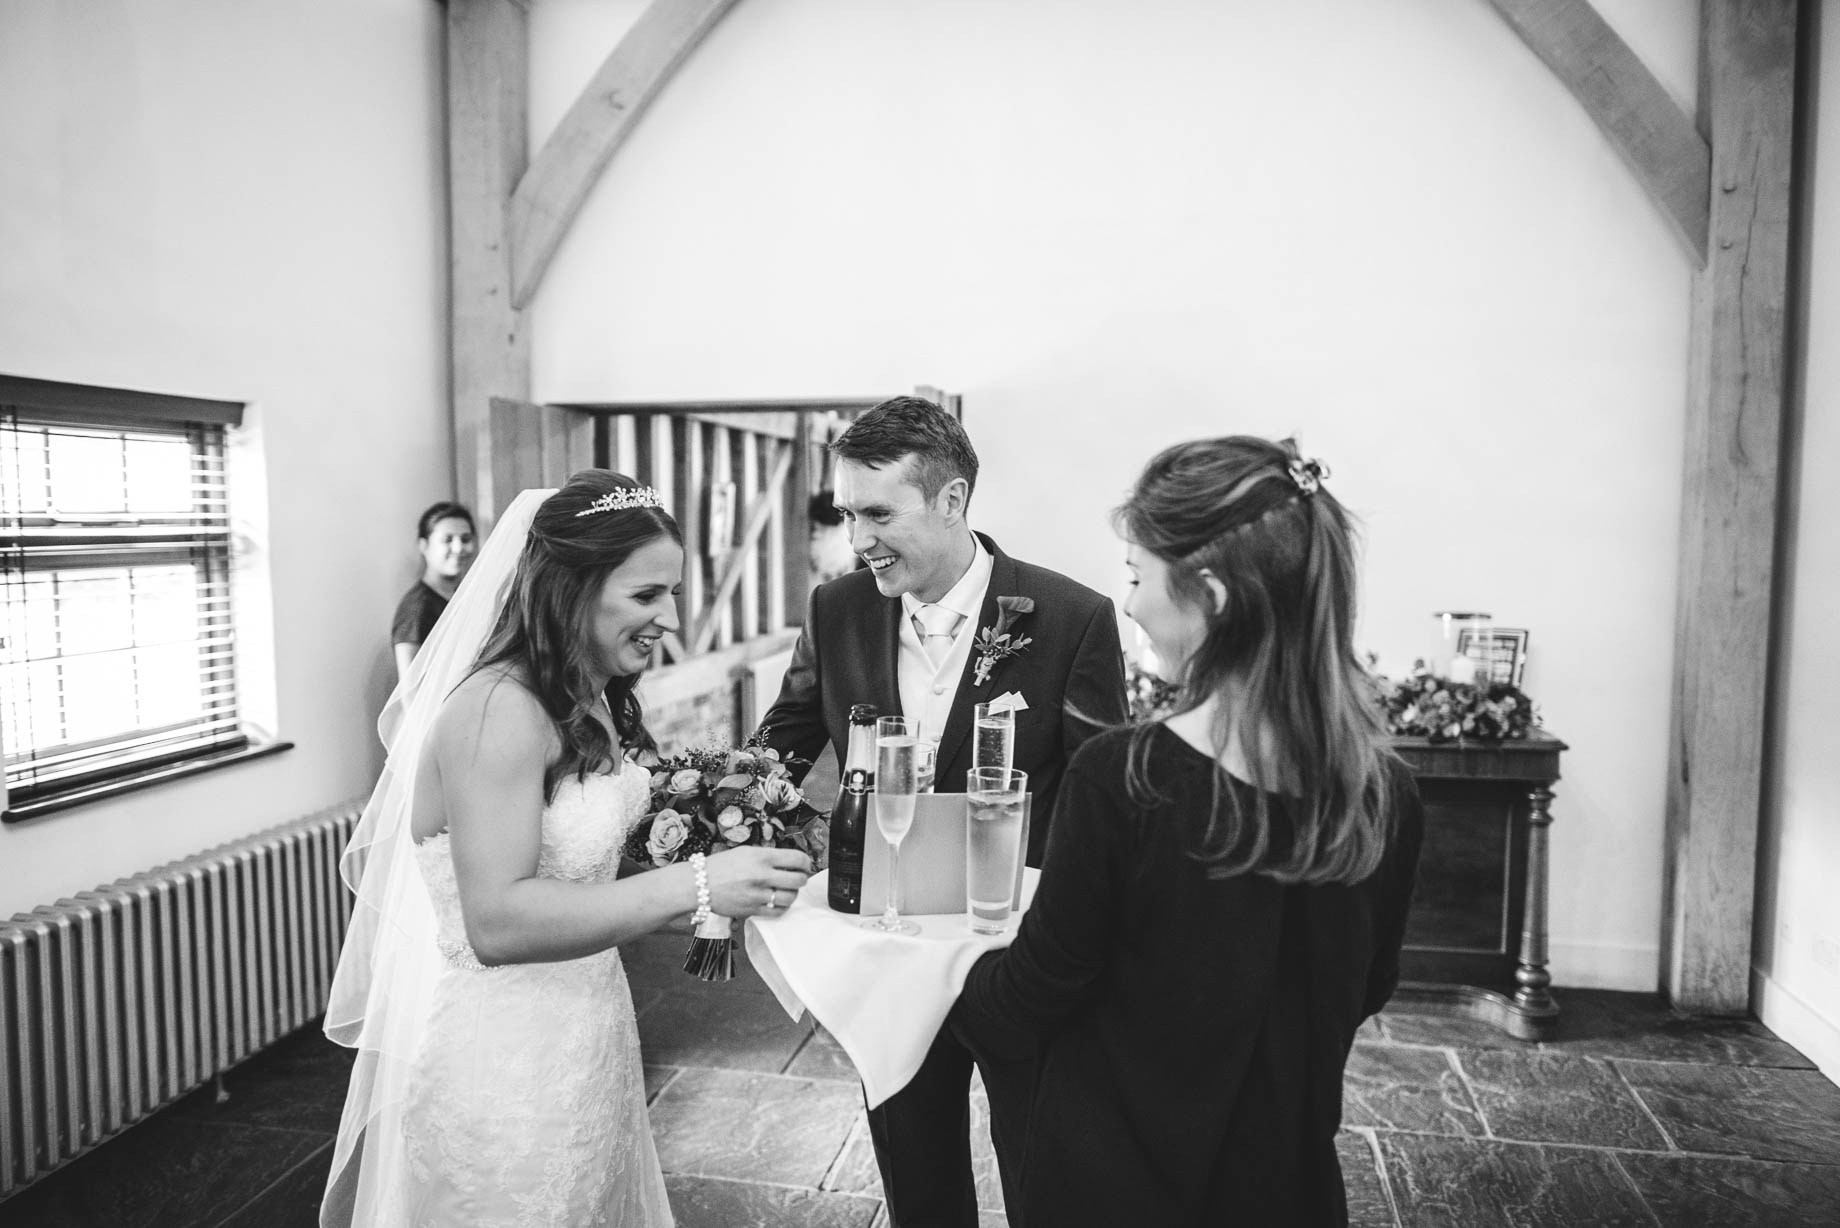 Gate Street Barn wedding photography - Guy Collier - Claire and Andy (65 of 192)